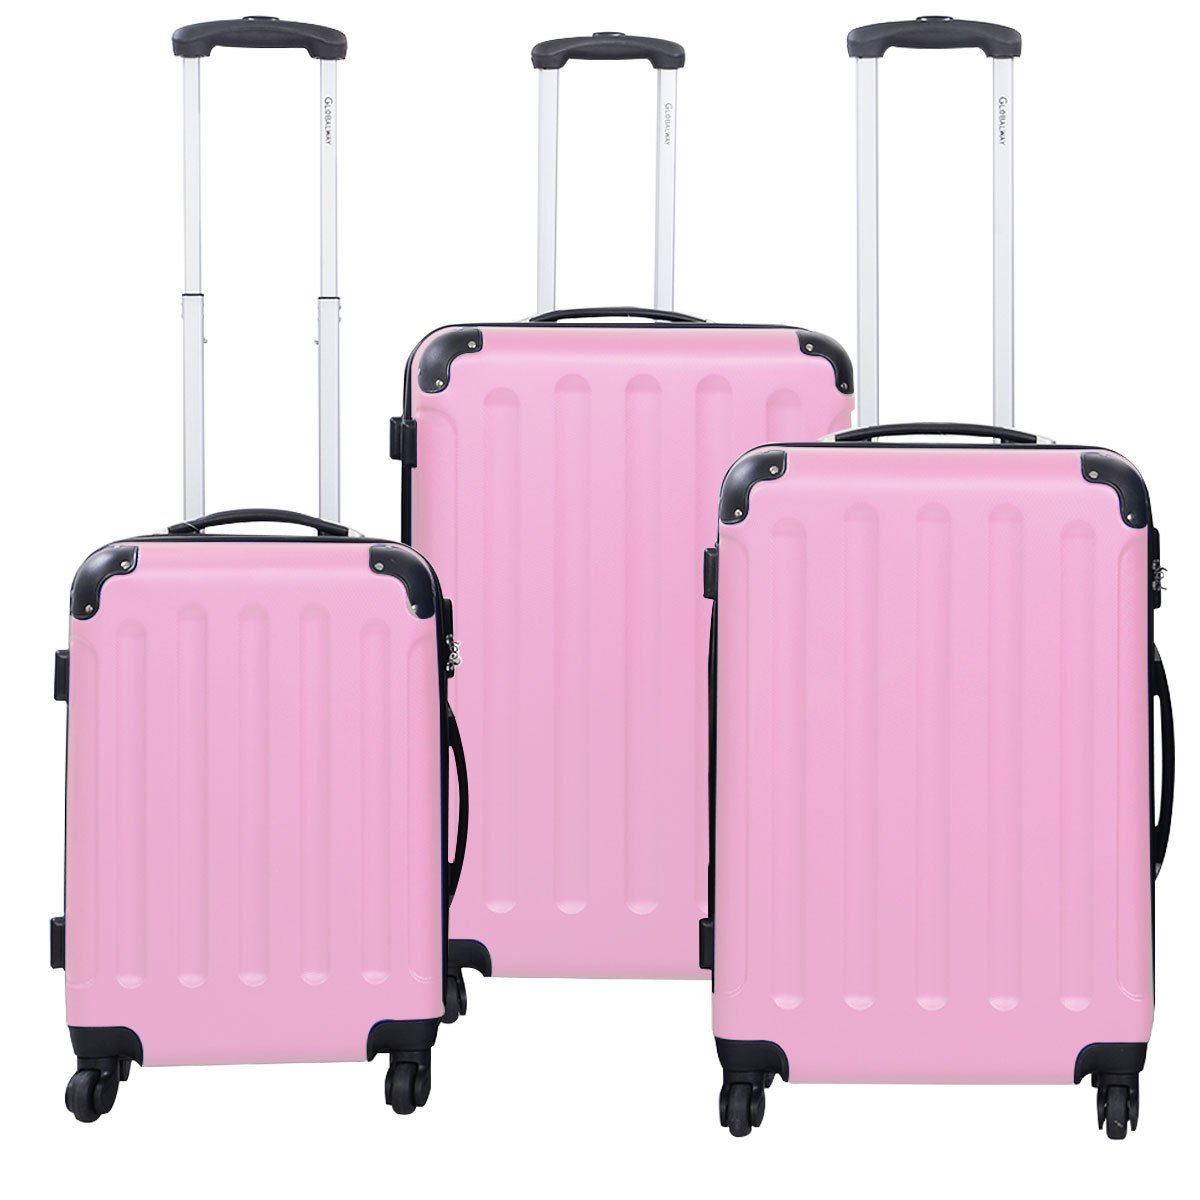 3 Pcs Luggage Travel Set Bag ABS+PC Trolley Suitcase Pink by tamsun